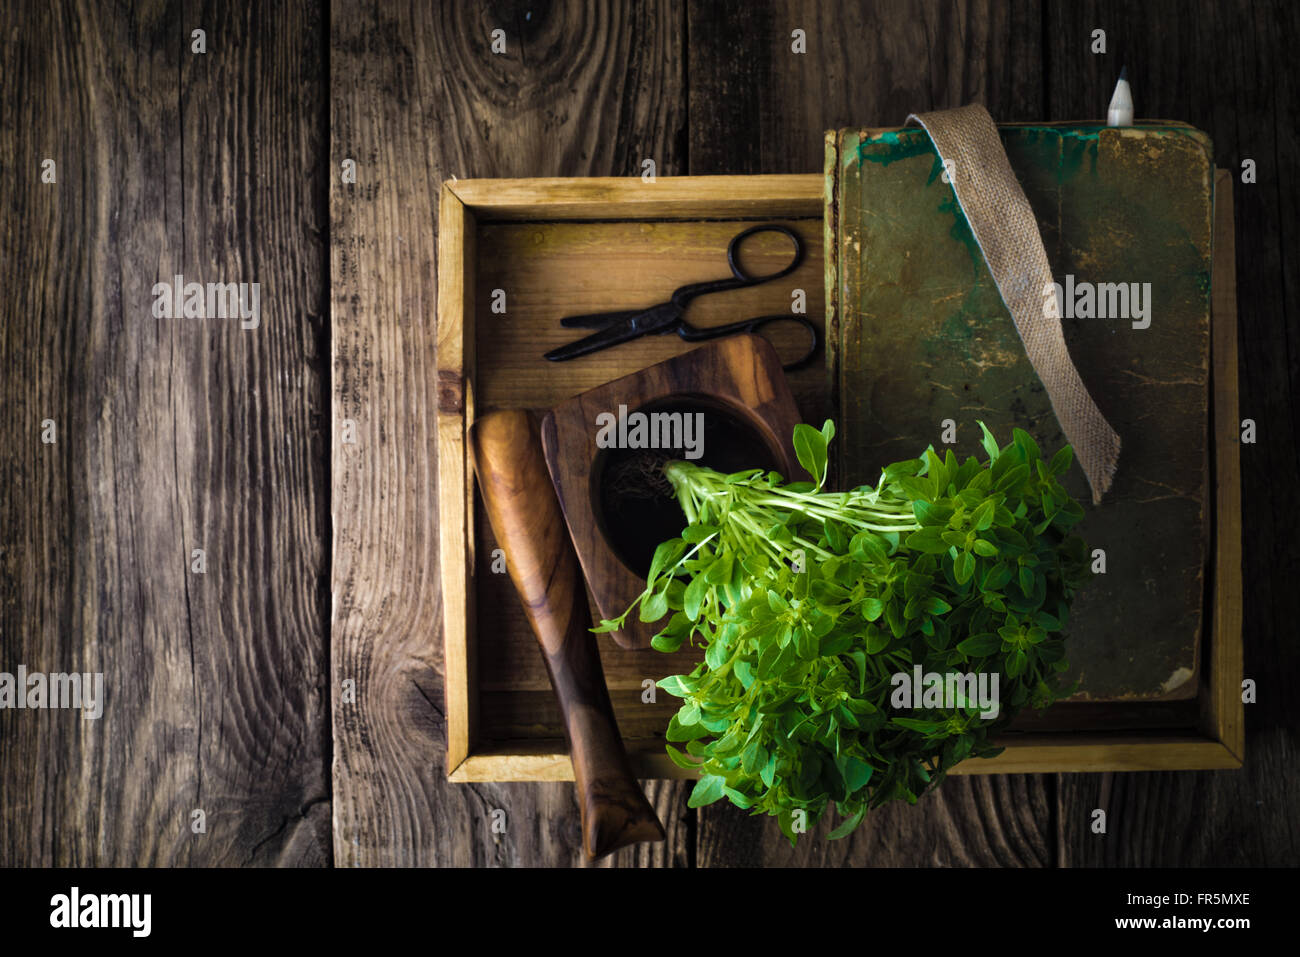 Basil, a book and a mortar on a wooden table horizontal Stock Photo